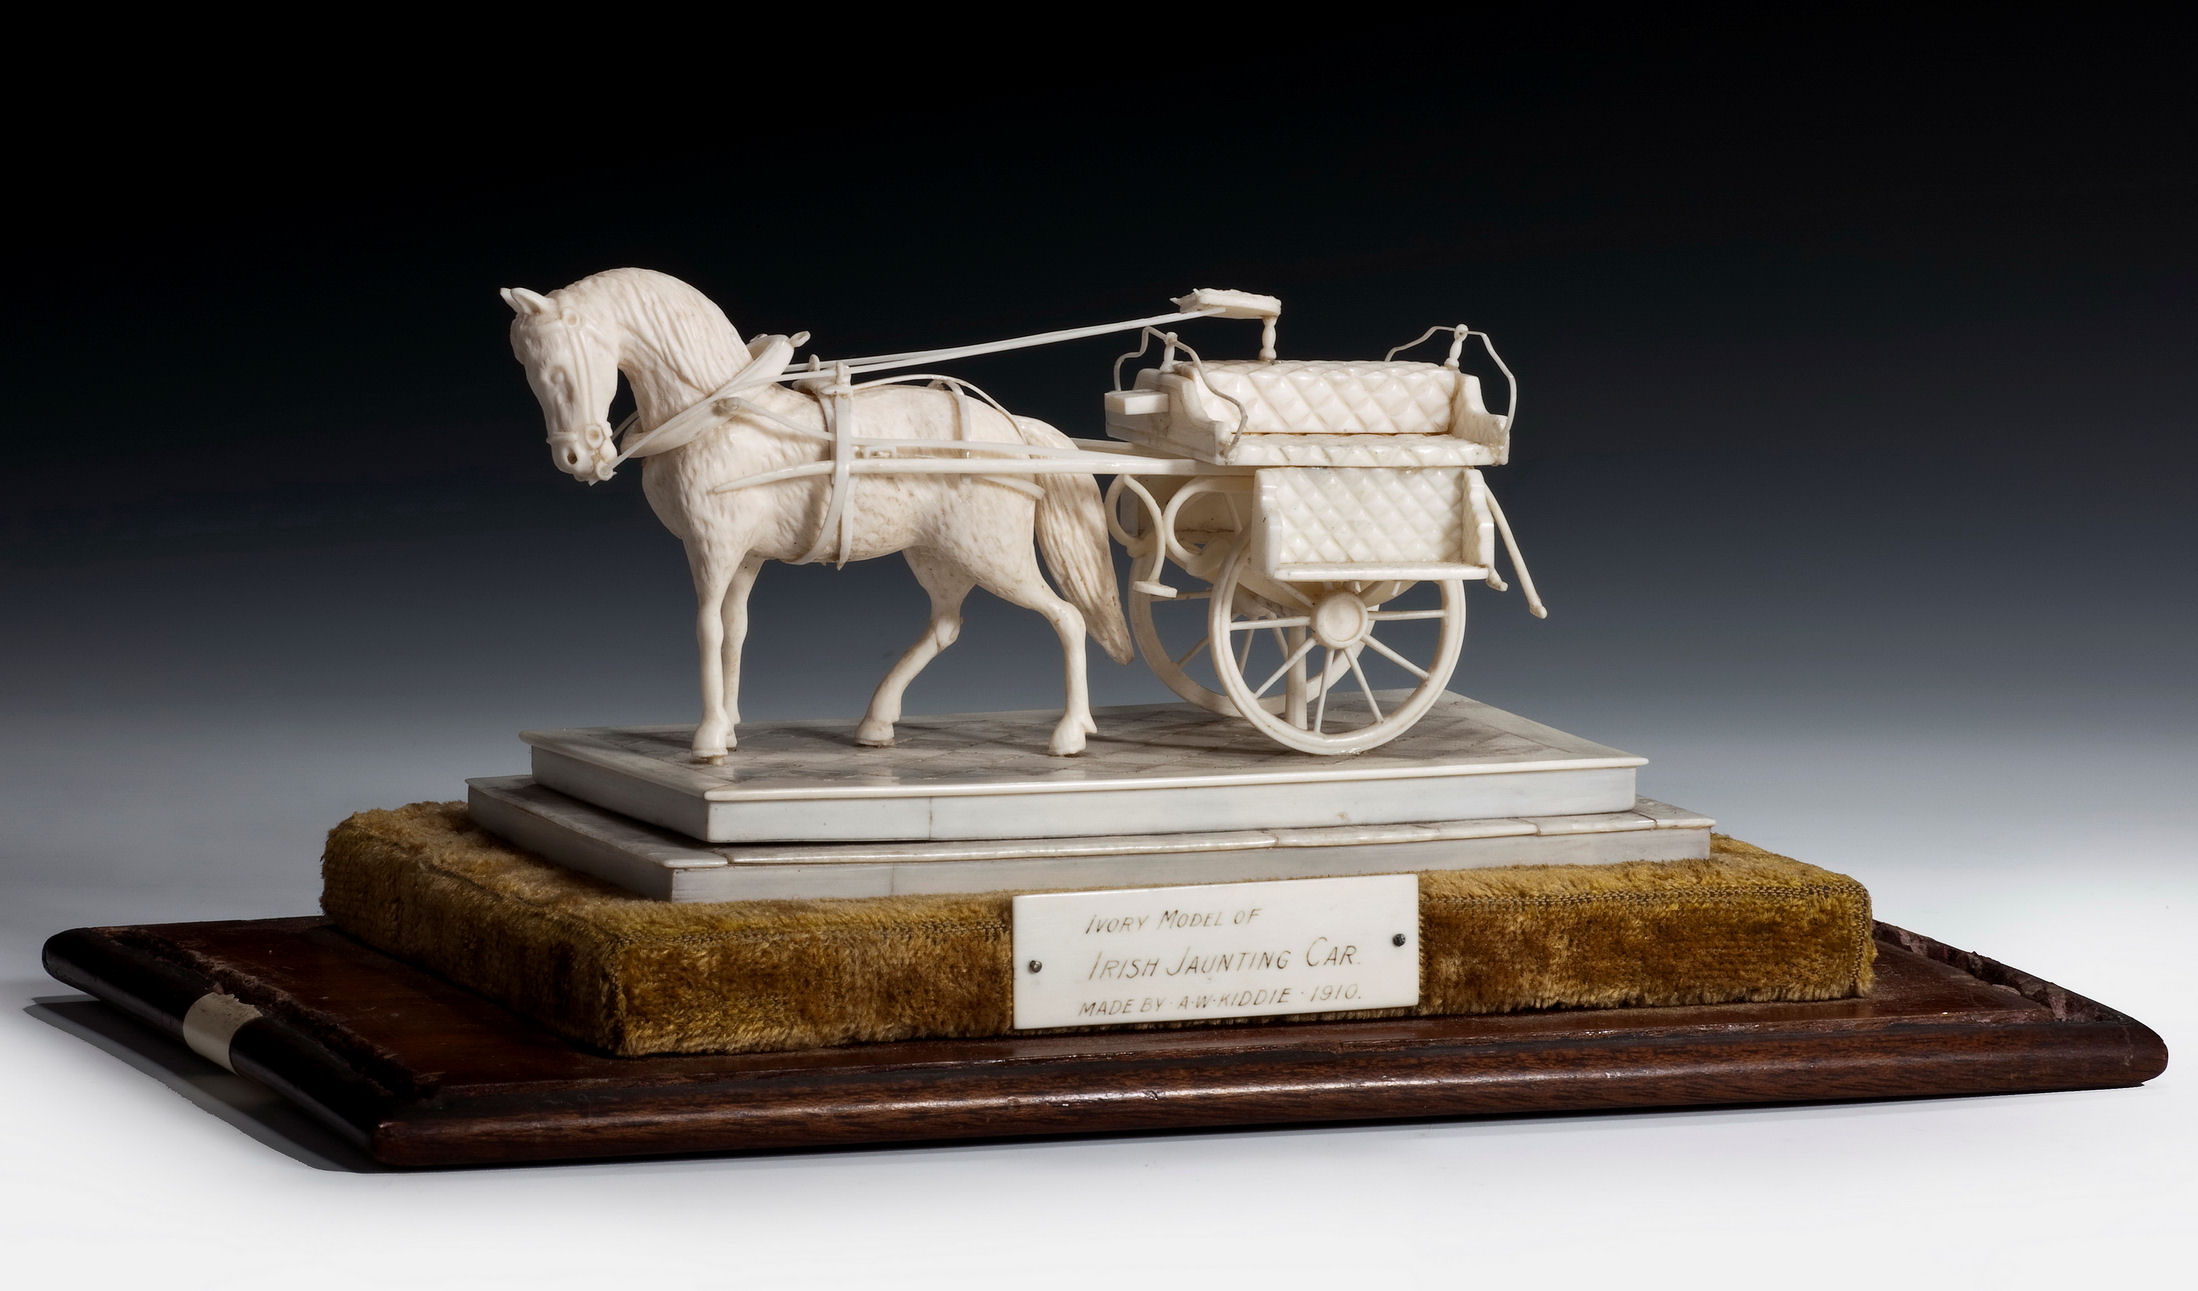 ANTIQUE IVORY MODEL OF IRISH JAUNTING CAR BY KIDDIE